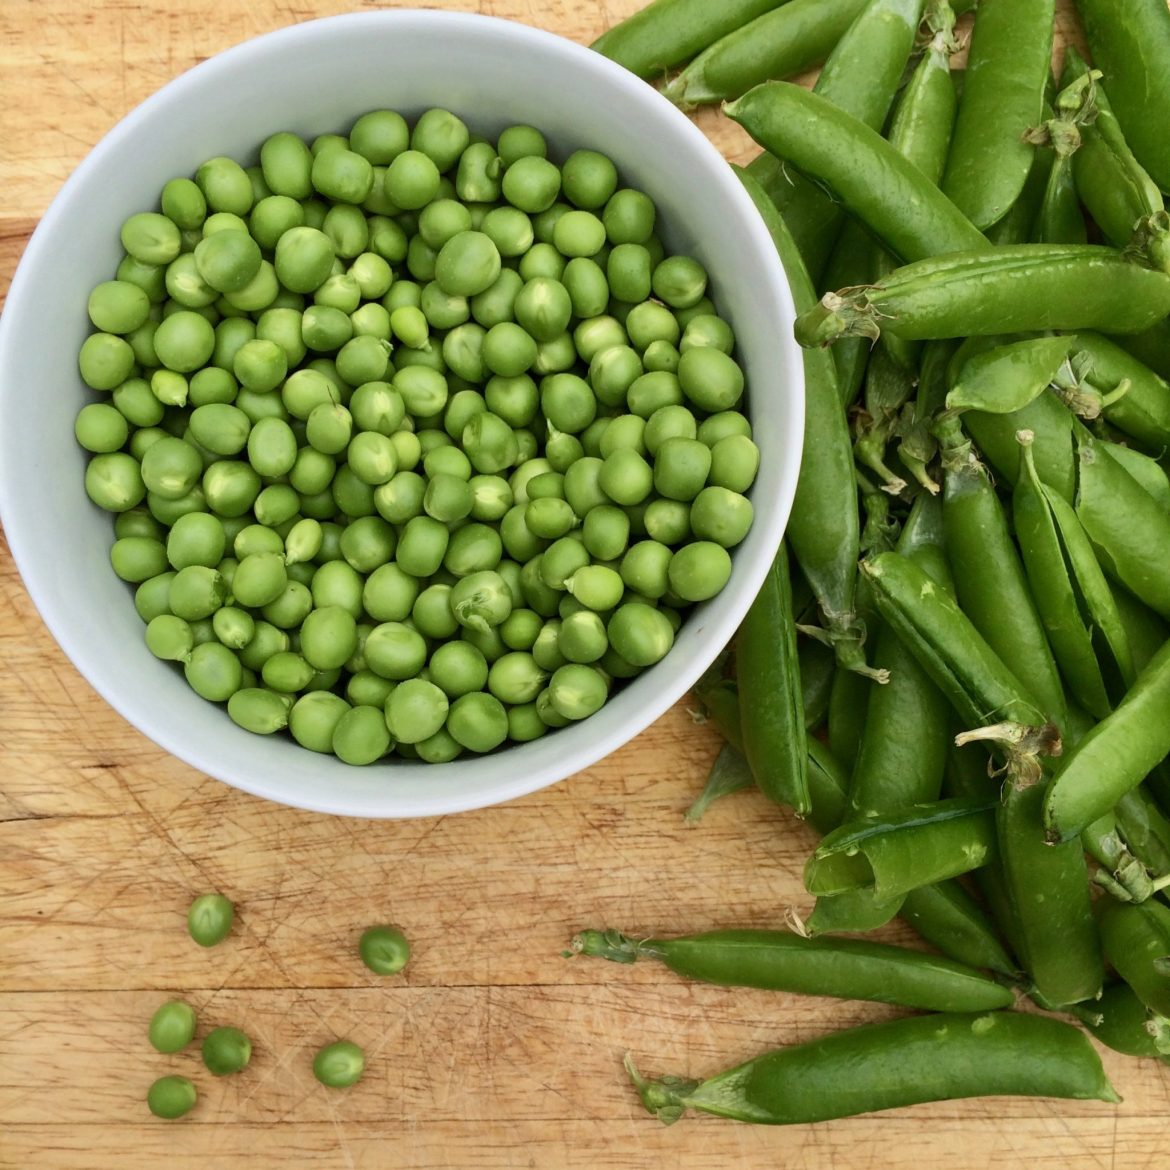 A bowl of fresh peas next to their pods